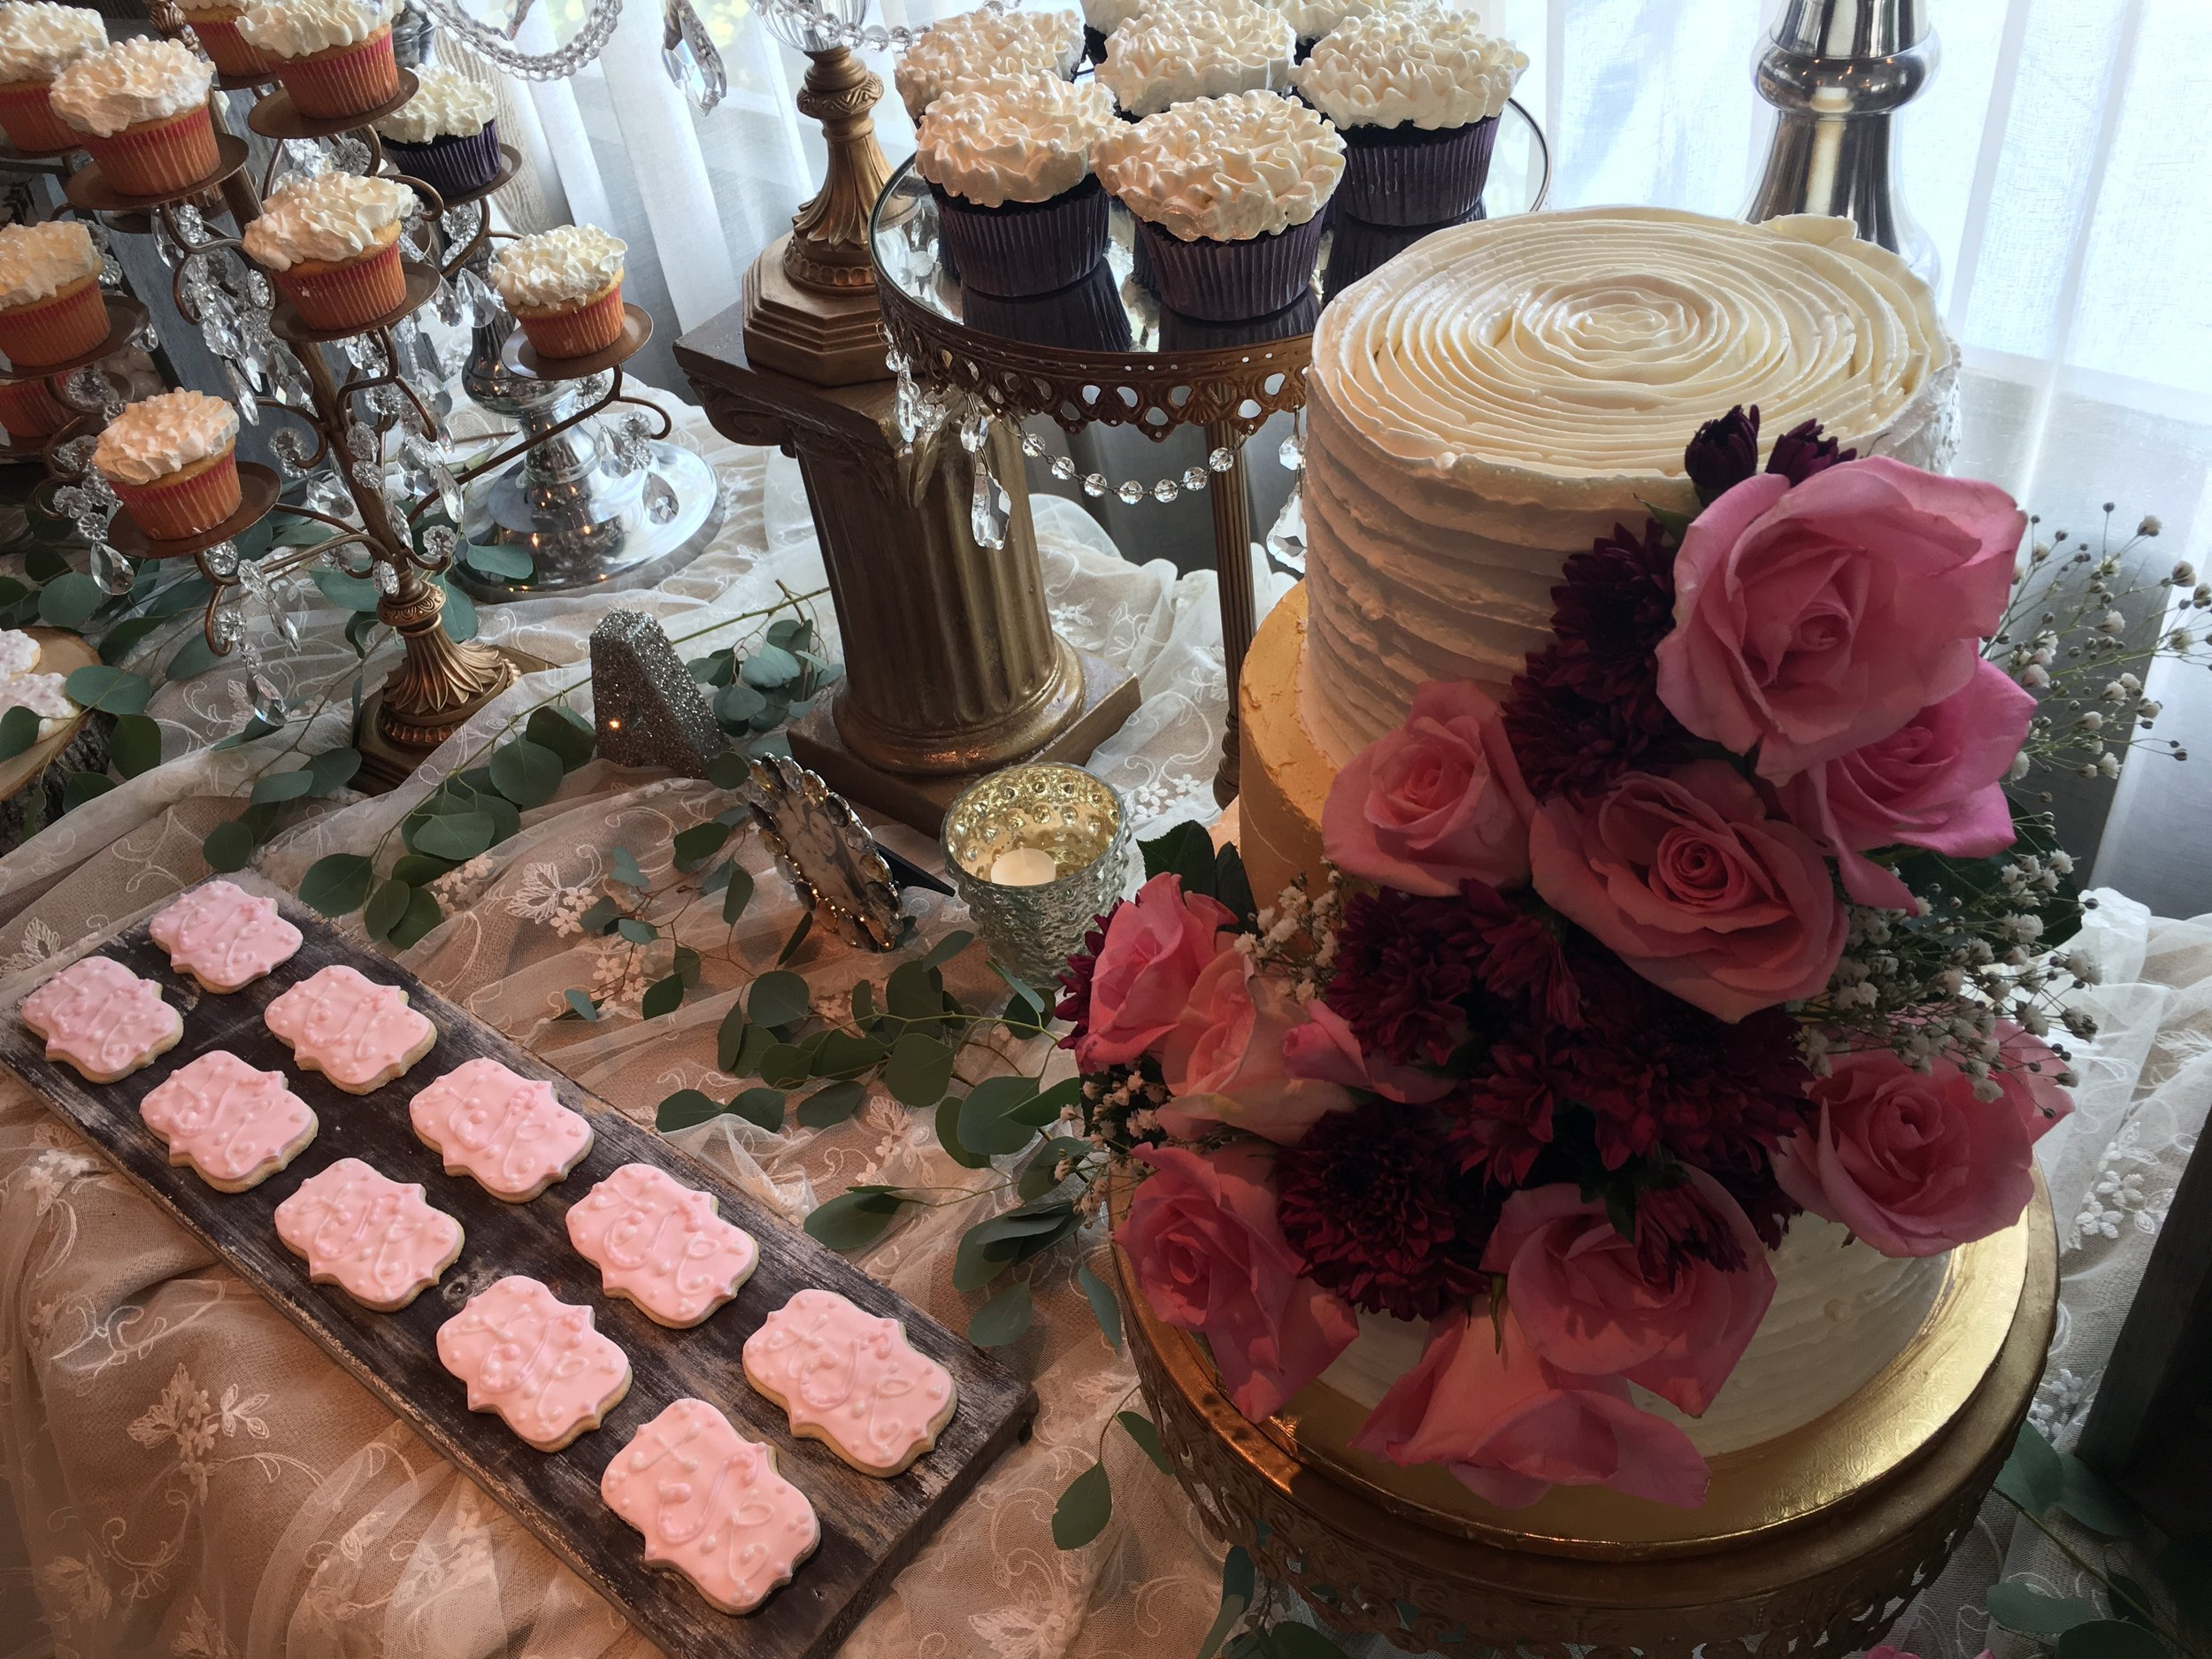 beautiful-and-blessed-events-hendricks-tavern-first-birthday-ava-rose-002